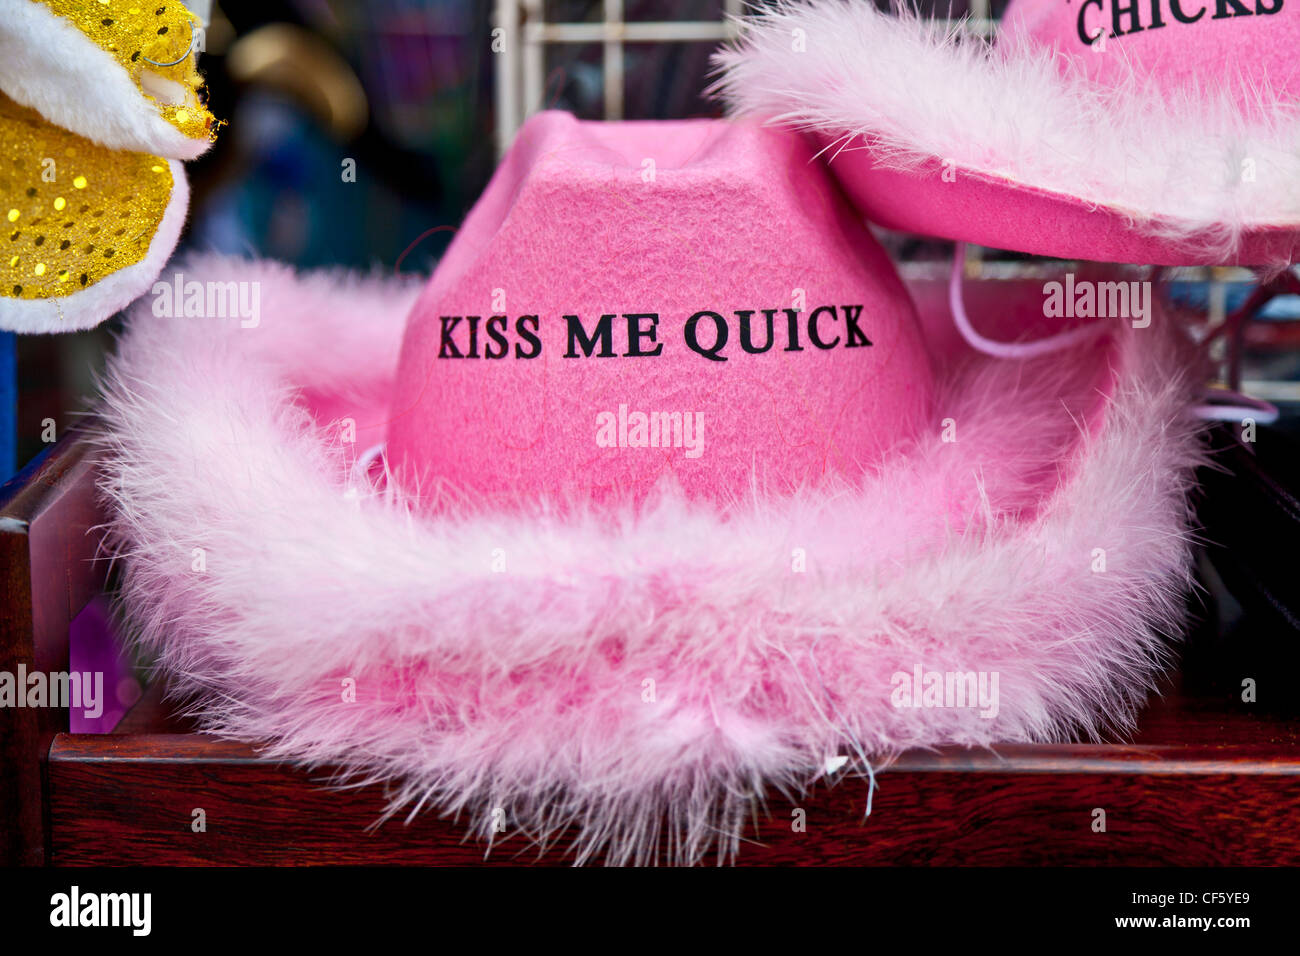 A pink Kiss Me Quick hat for sale on the seafront at Blackpool. - Stock Image